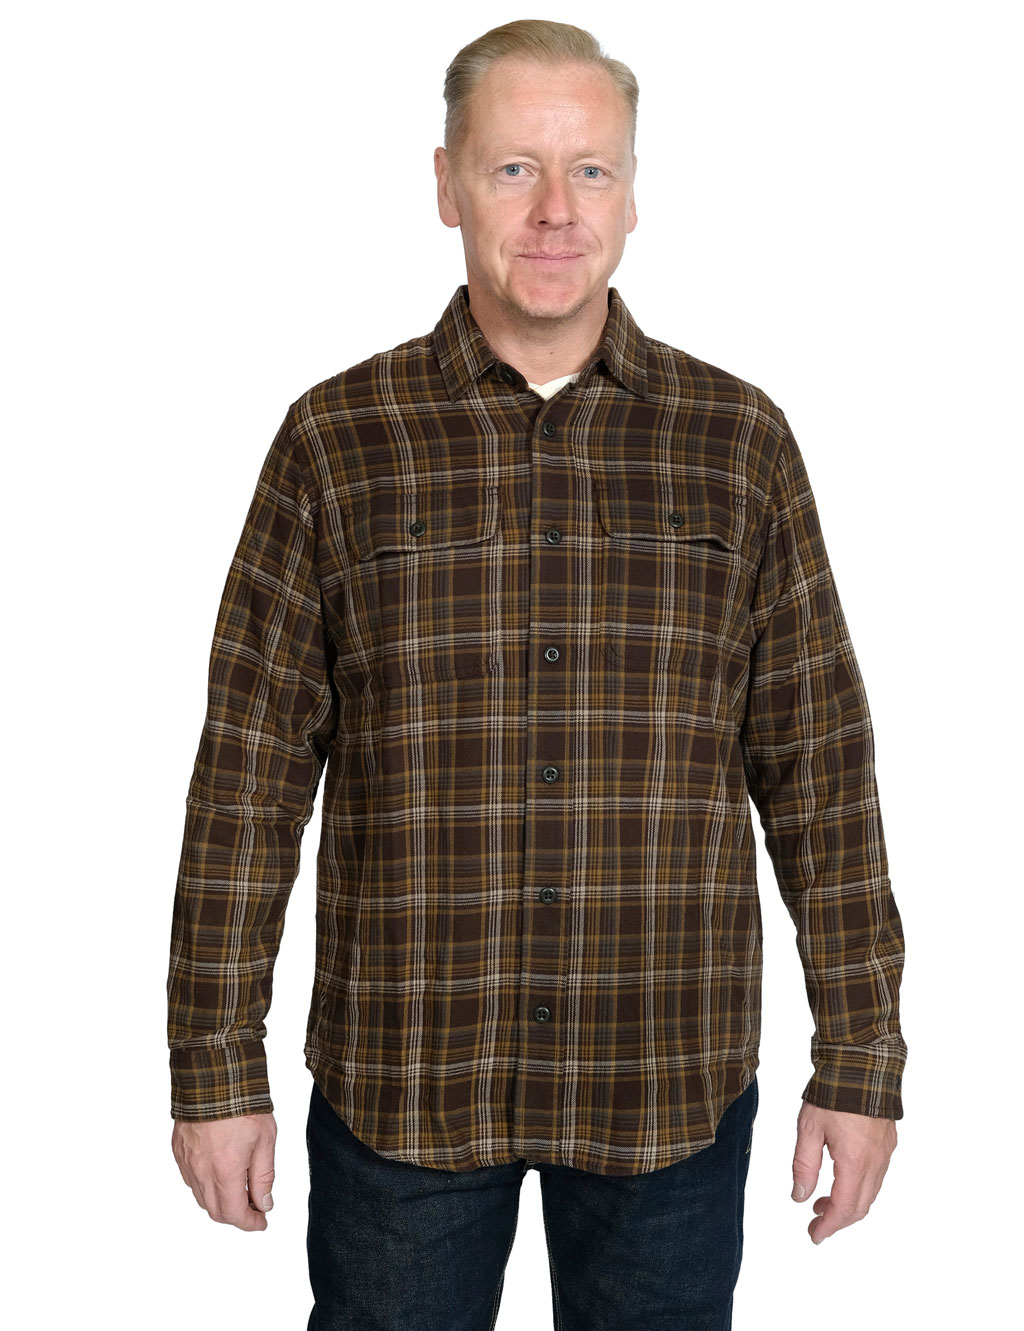 Filson---Scout-Flannel-Shirt---Brown-Tan-Otter-Green-Plaid-81235